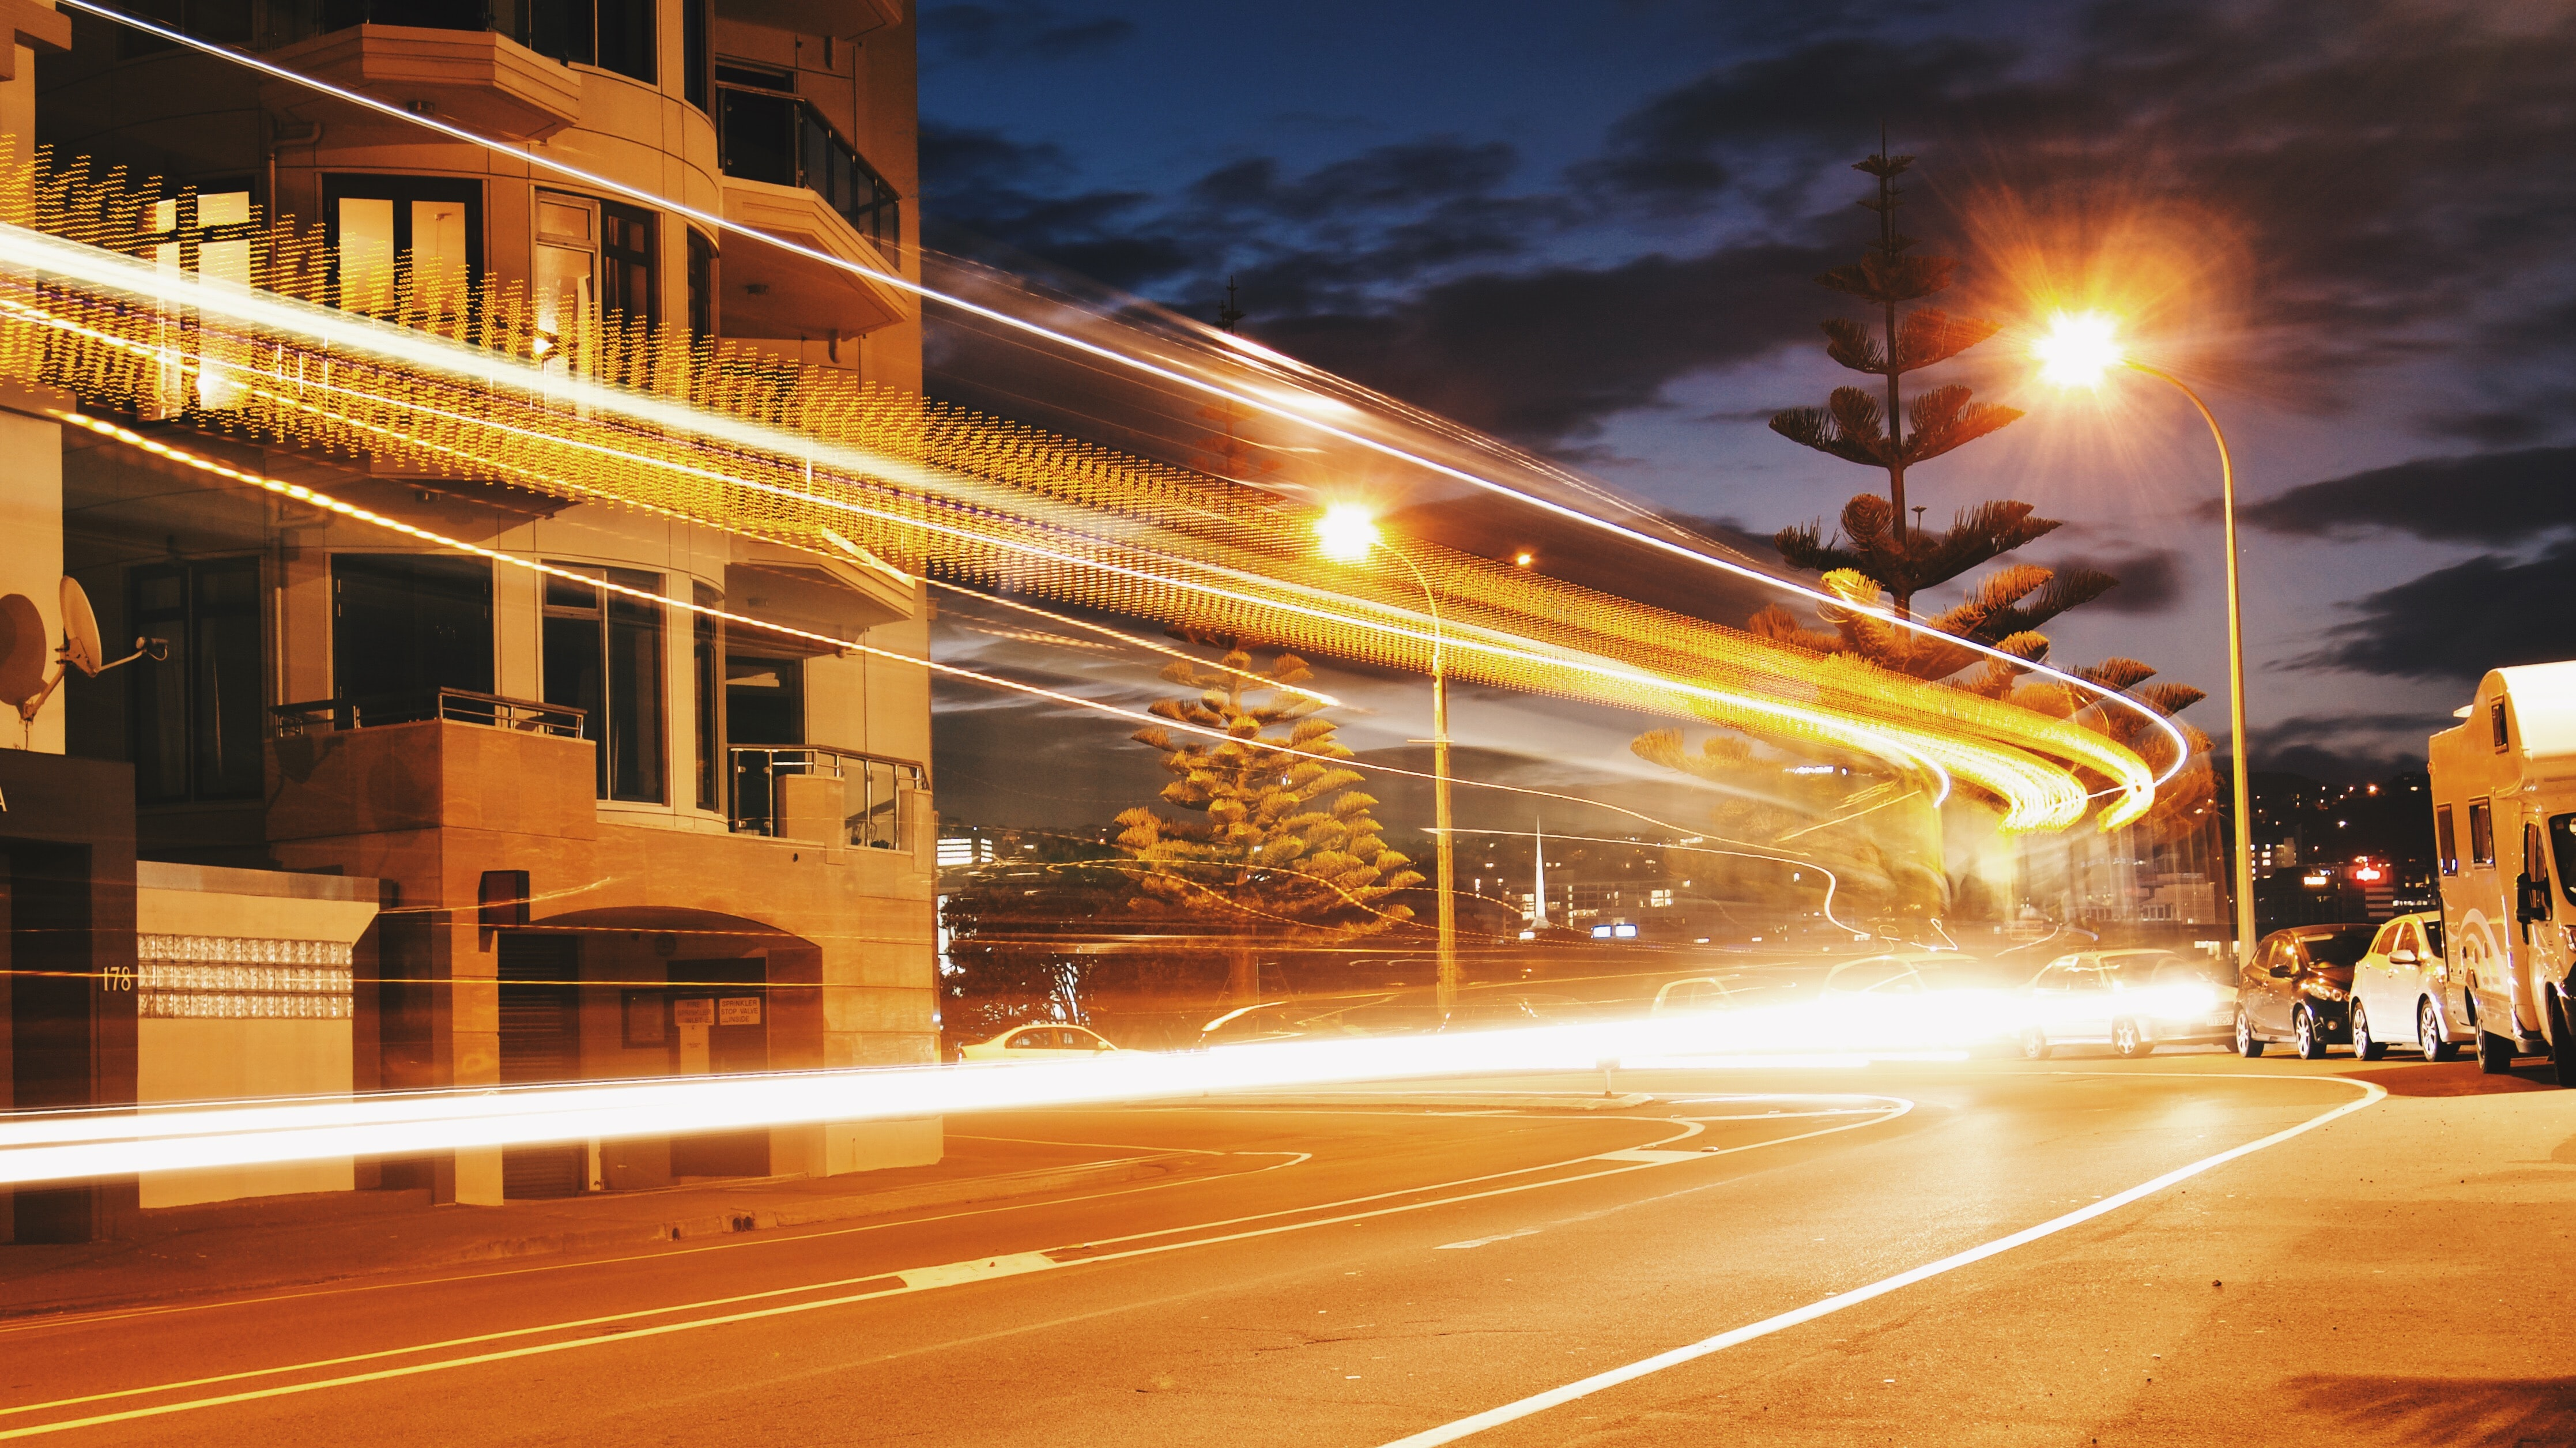 A vivid and bright shot of street lights, with light trails from a traffic timelapse